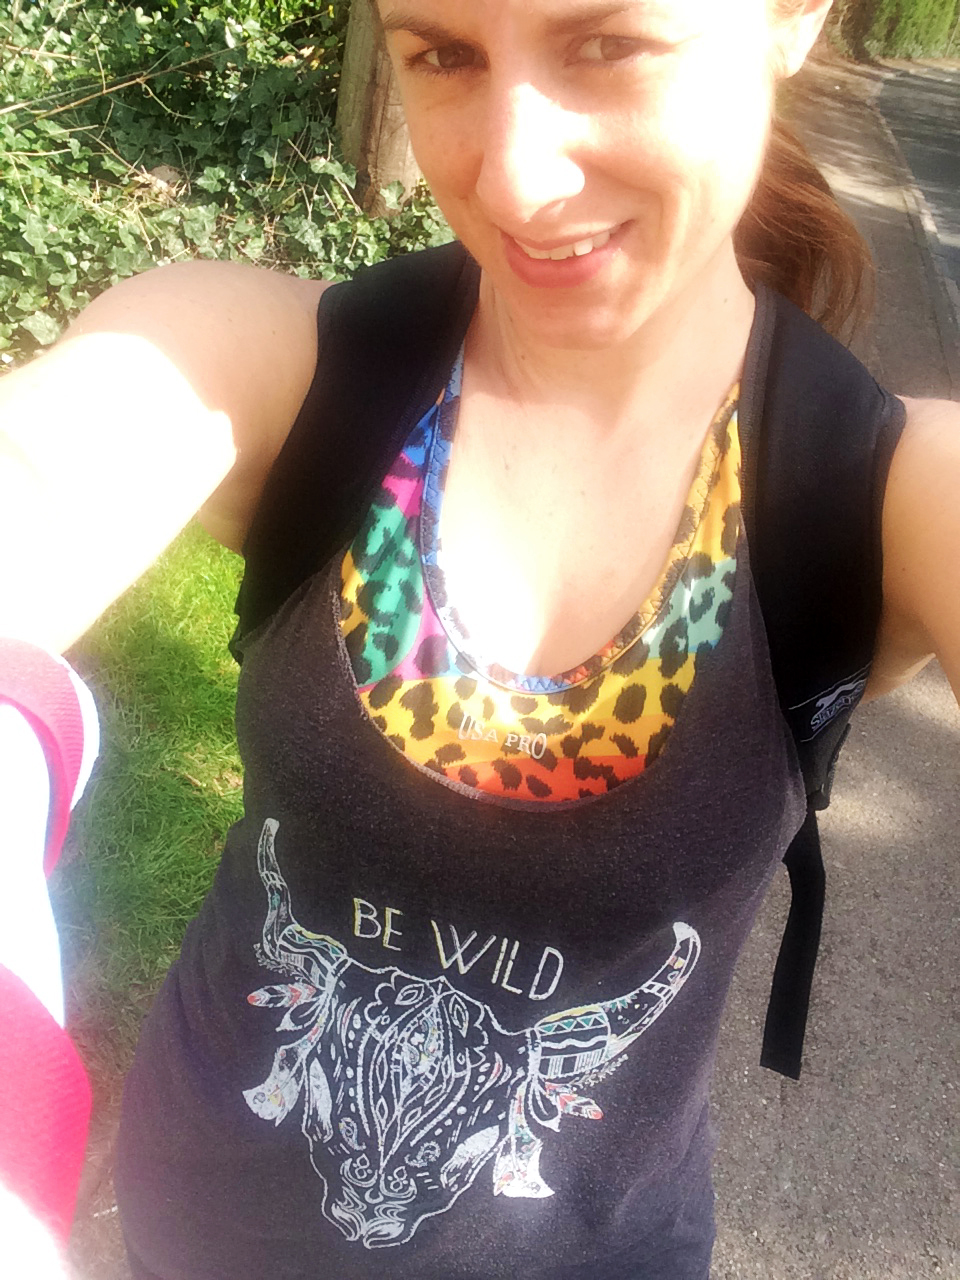 ...a quick t-shirt selfie as I was walking into town after my hospital appointment :-)